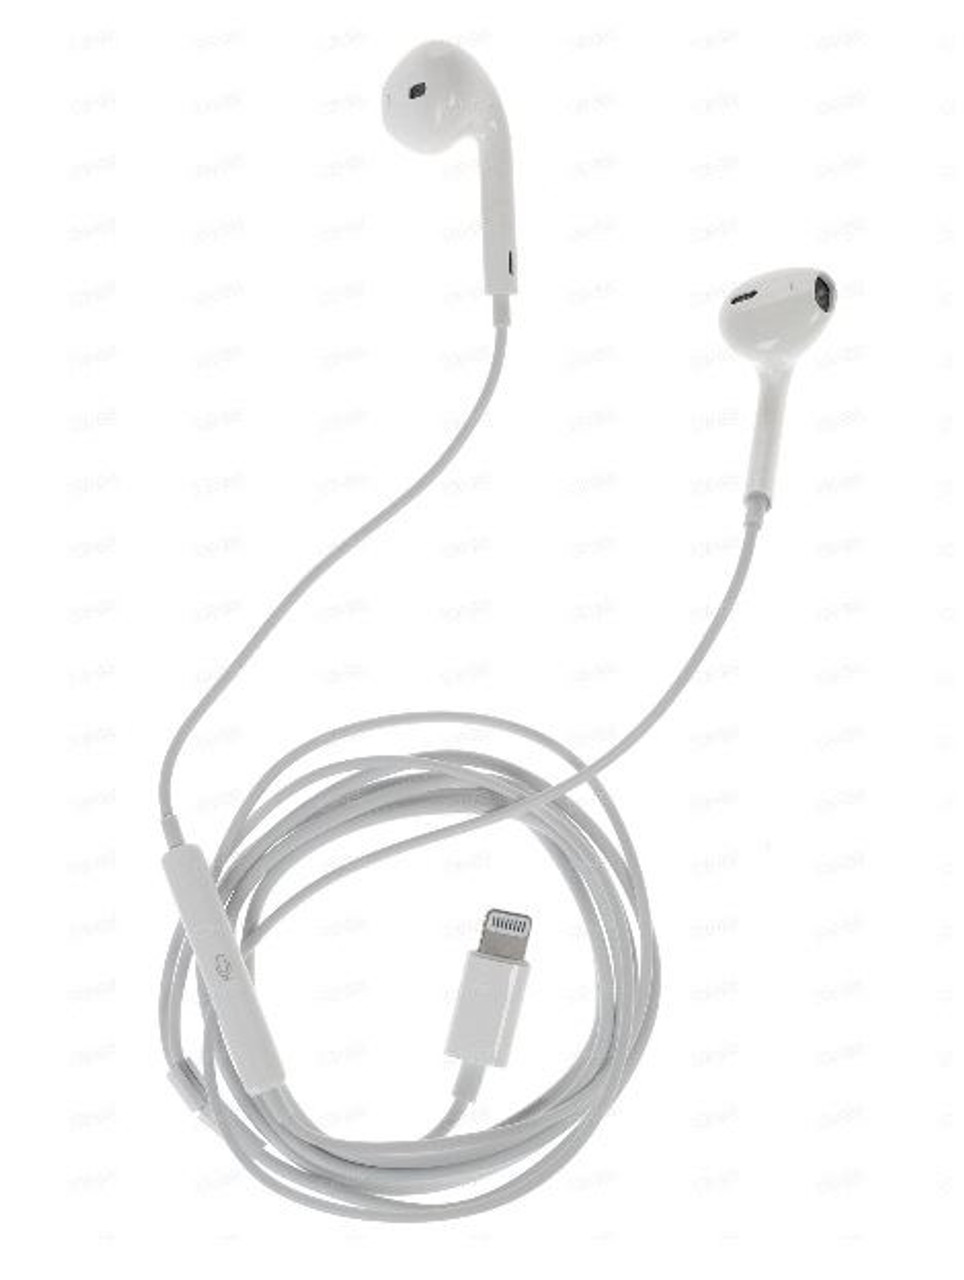 Genuine Original Official Apple Earpods With Lightning Connector